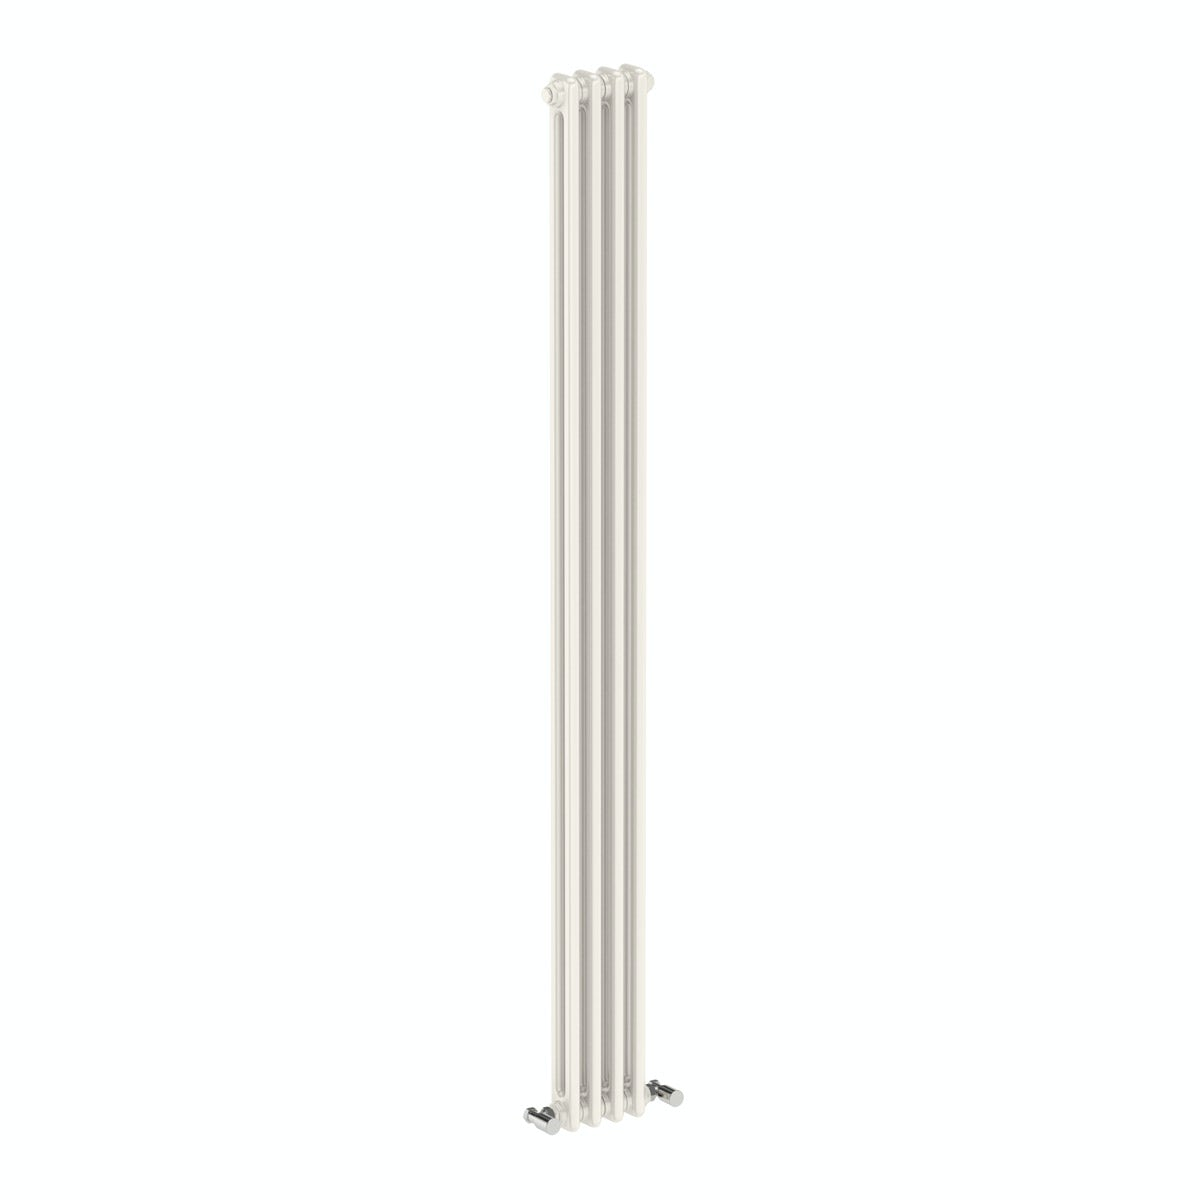 The Bath Co. Dulwich vertical white double column radiator 1800 x 200